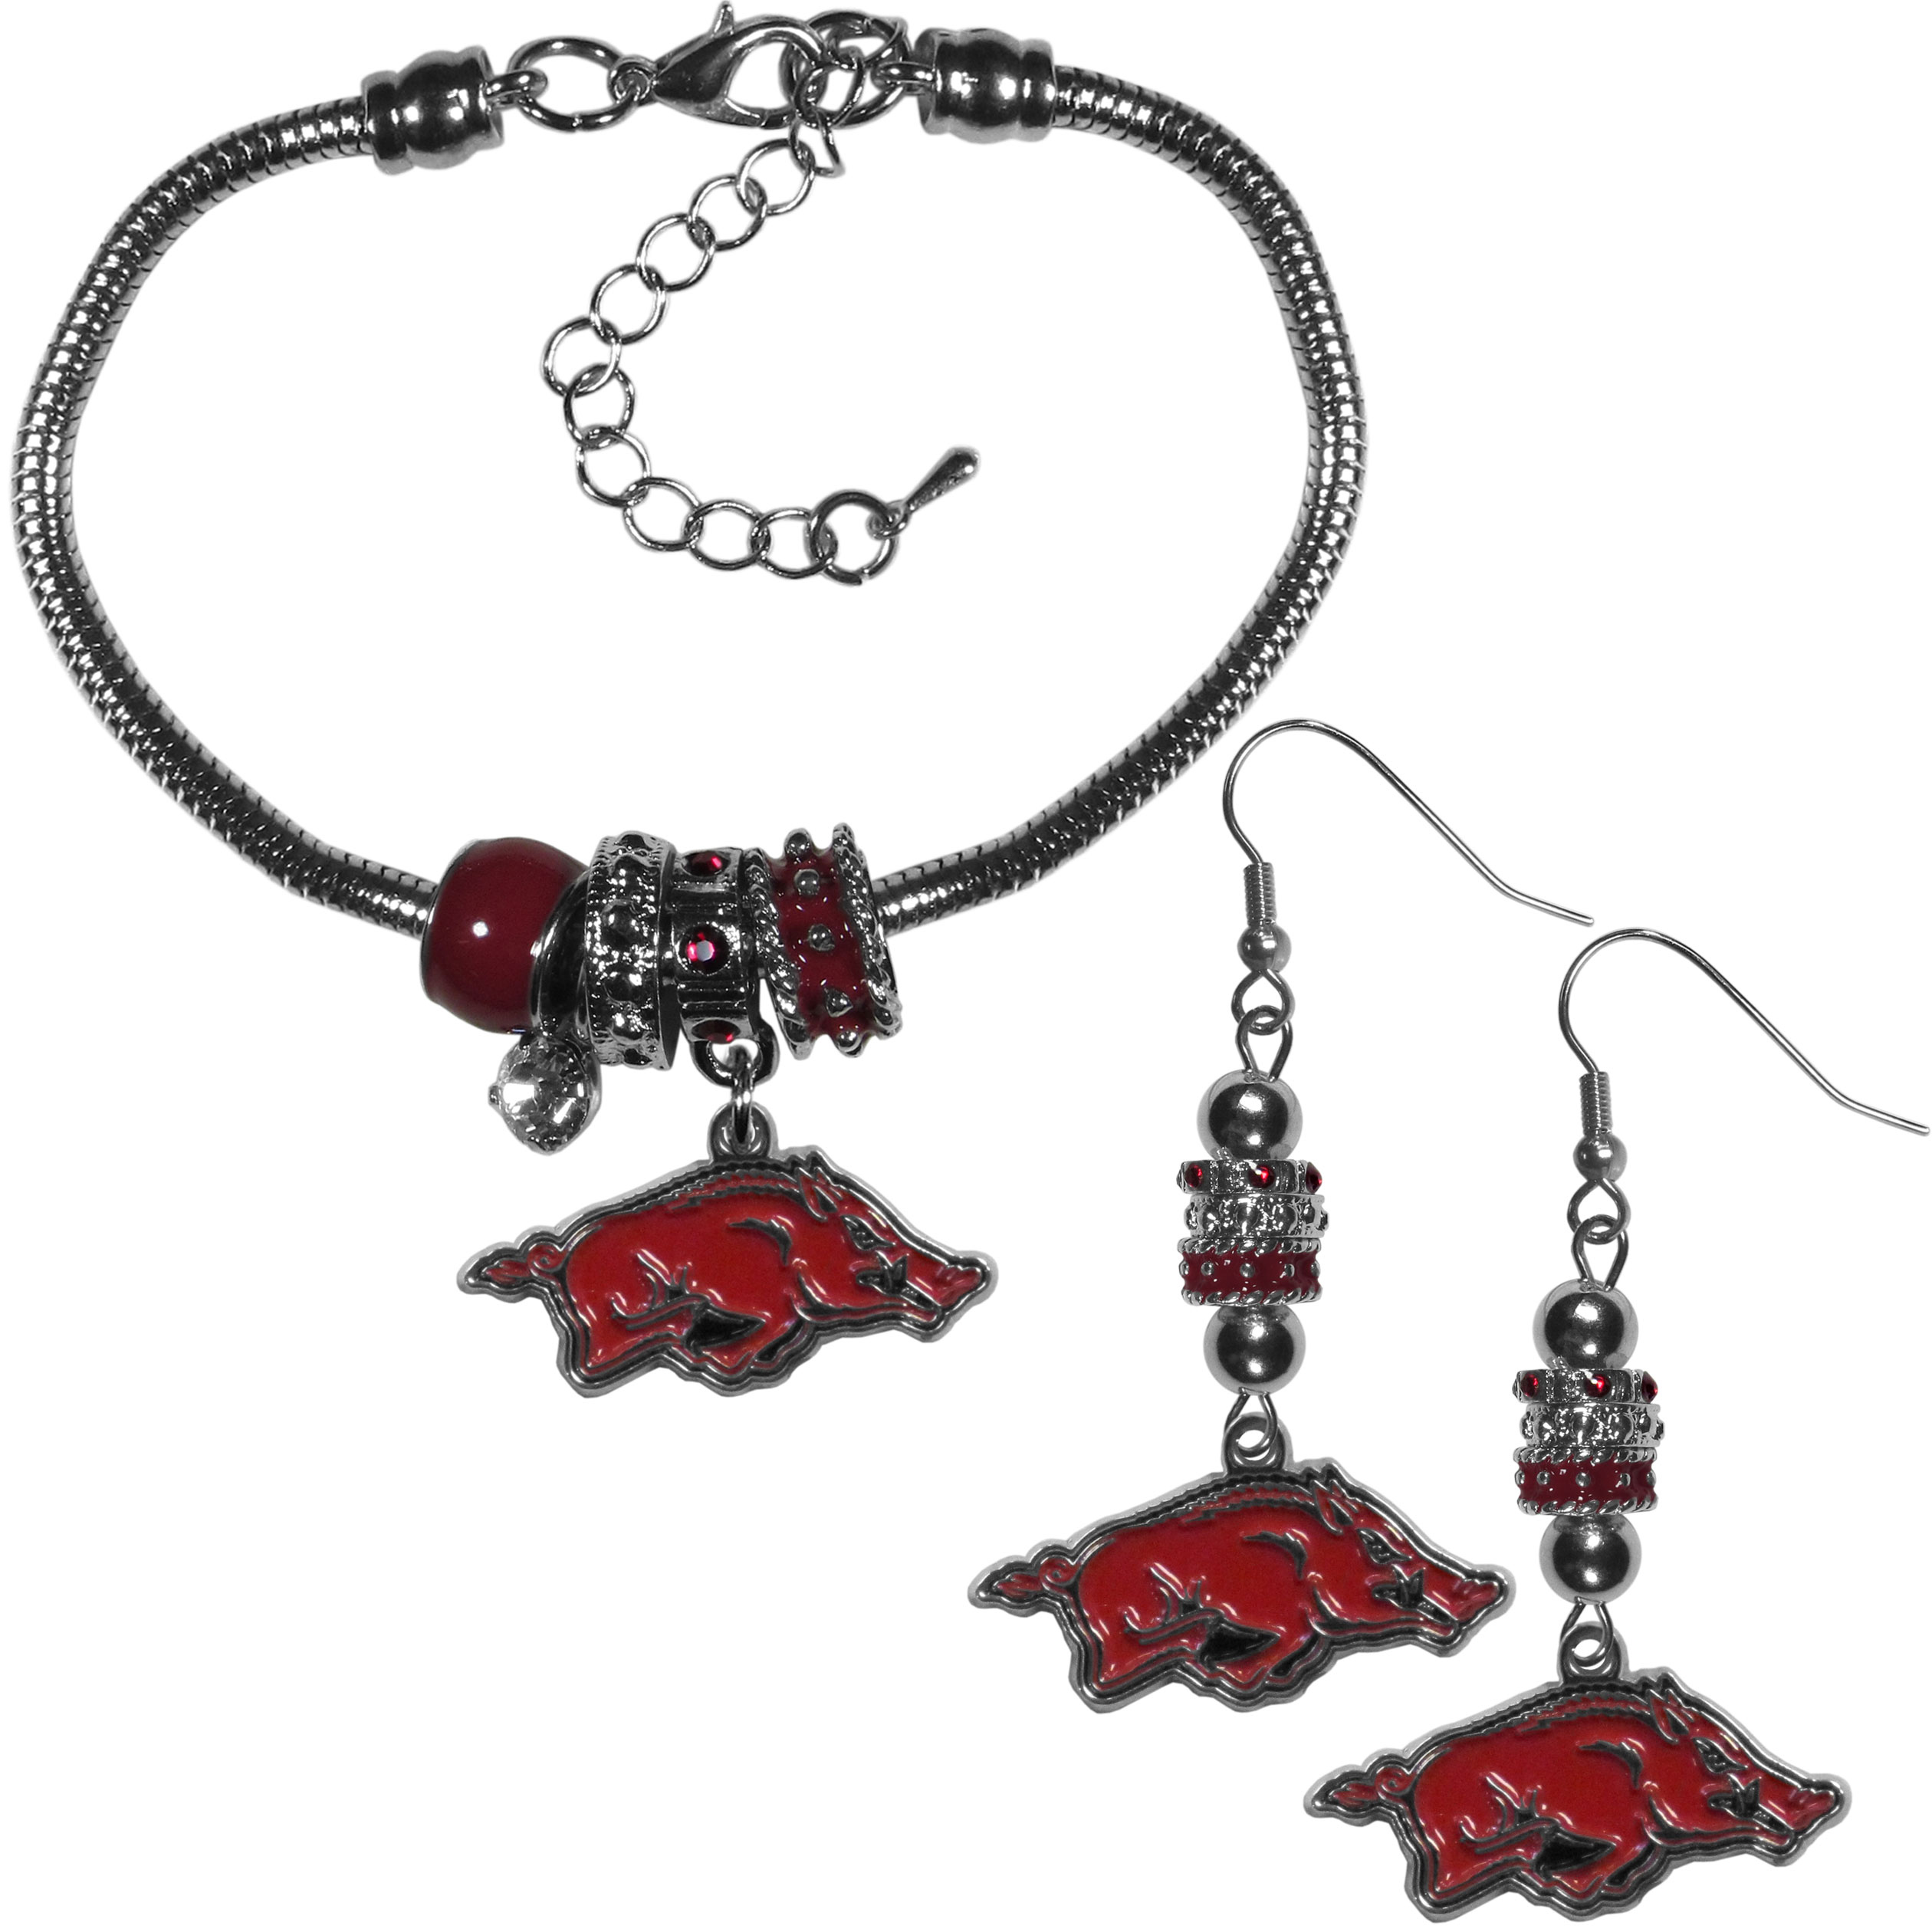 Arkansas Razorbacks Euro Bead Earrings and Bracelet Set - We combine the popular Euro bead style with your love of the Arkansas Razorbacks with this beautiful jewelry set that includes earrings and a matching bracelet. The stylish earrings feature hypoallergenic, nickel free fishhook posts and 3 team colored Euro beads and a metal team charm. The matching snake chain bracelet is 7.5 inches long with a 2 inch extender and 4 Euro beads with a rhinestone charm and team charm.